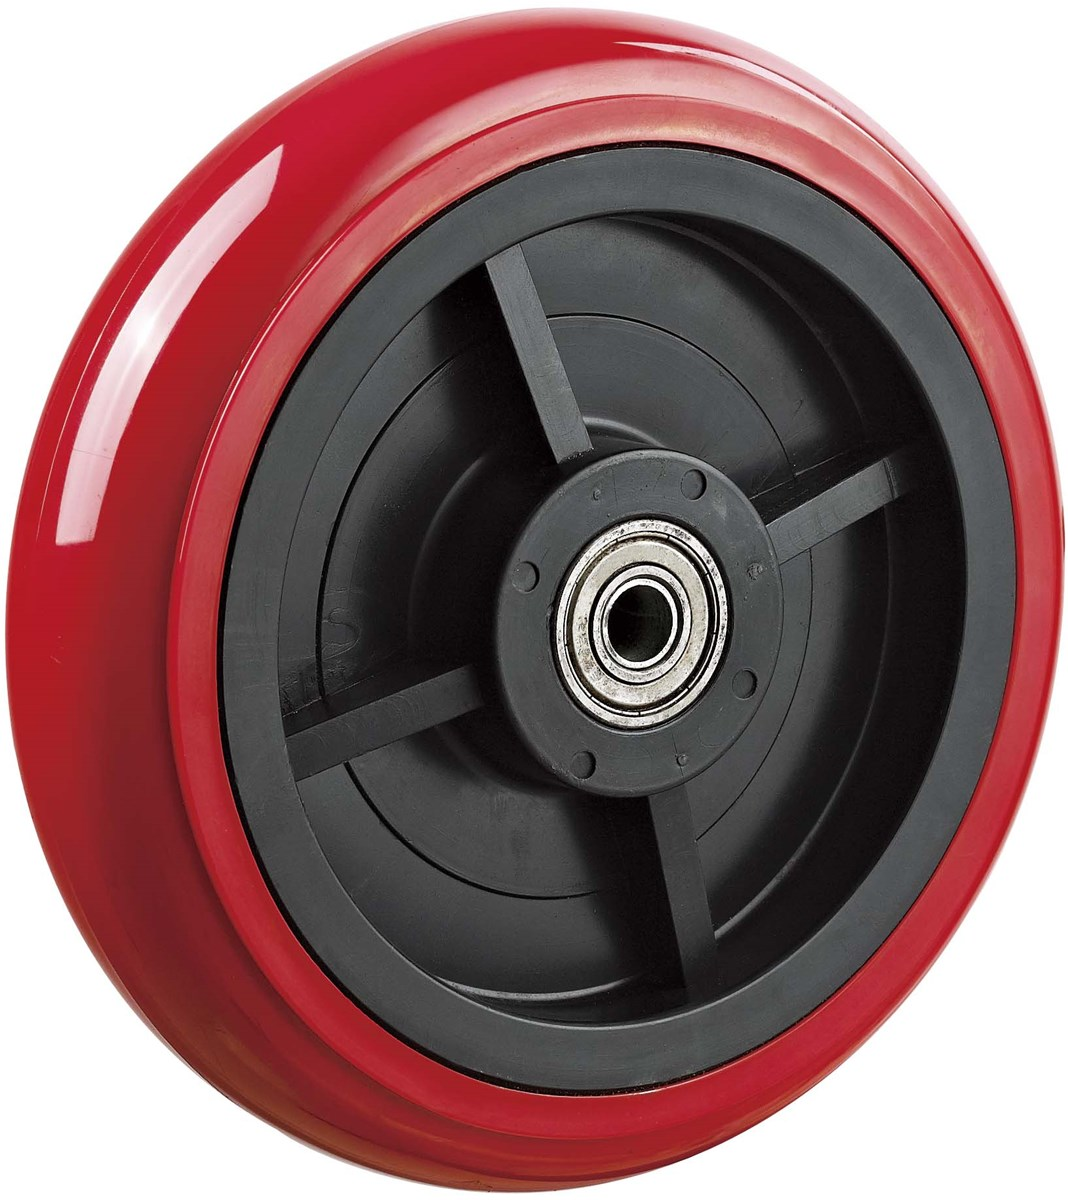 Hardware Tools Caster Wheel 5 Inches PU Plastic Single Wheels